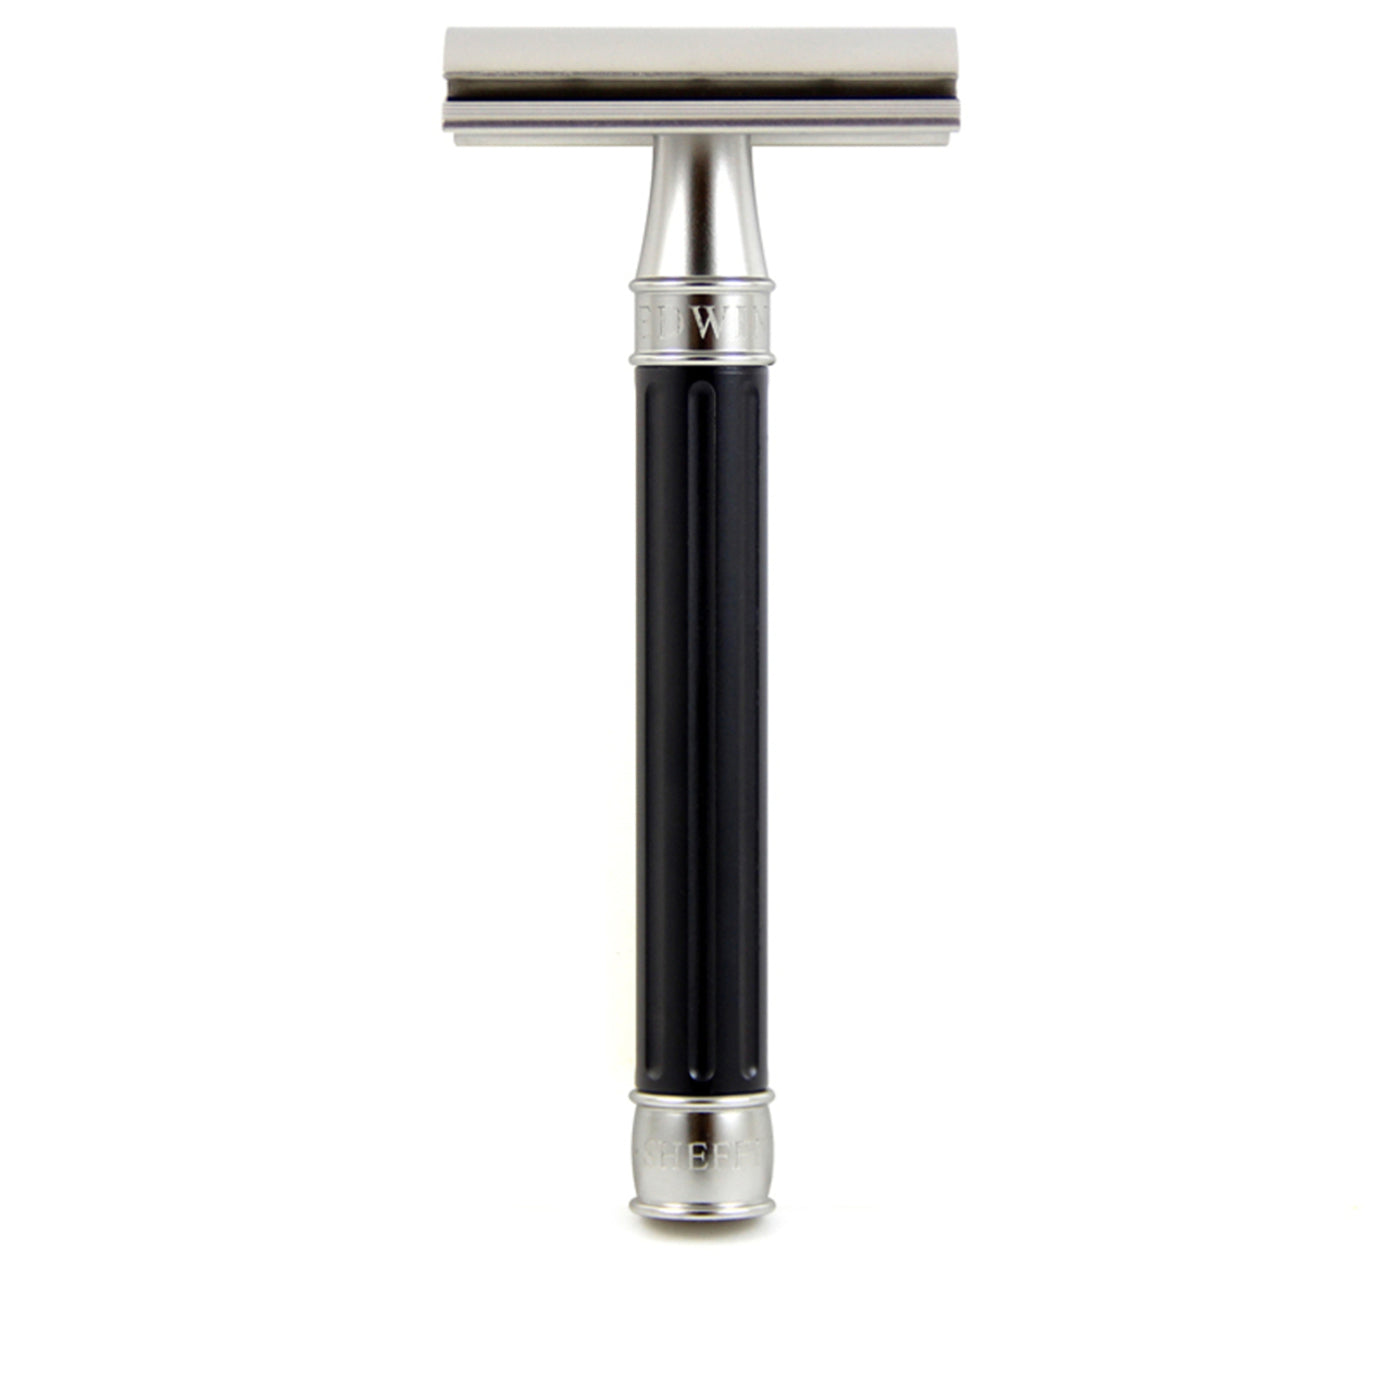 Edwin Jagger 3ONE6 Stainless Steel Double Edge Safety Razor, Black